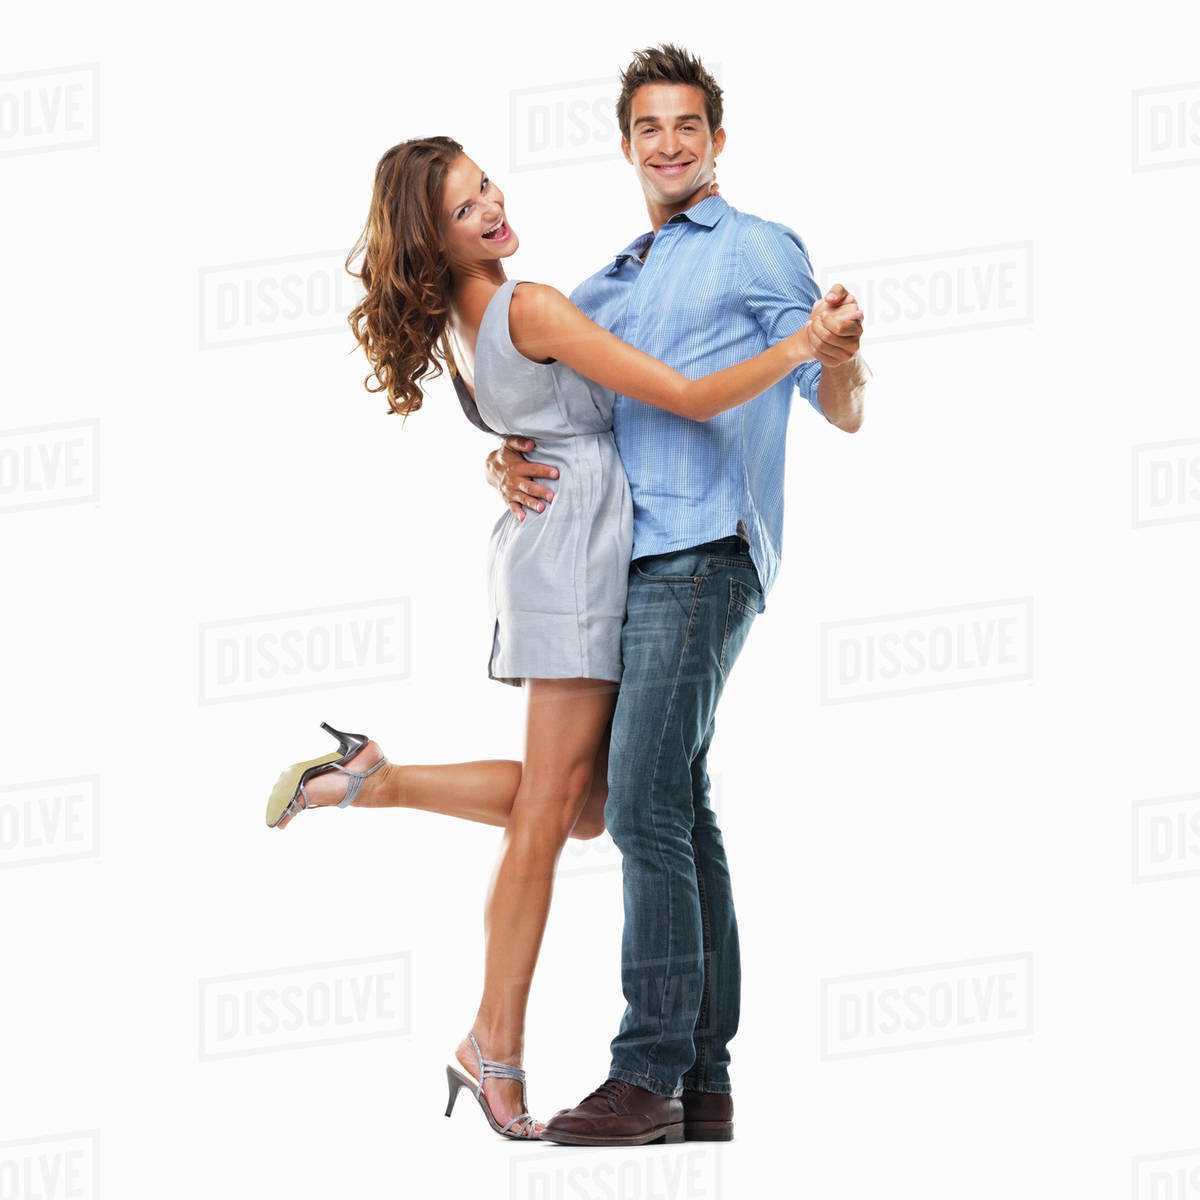 Studio Shot Of Young Couple Dancing Together And Smiling Stock Photo Dissolve